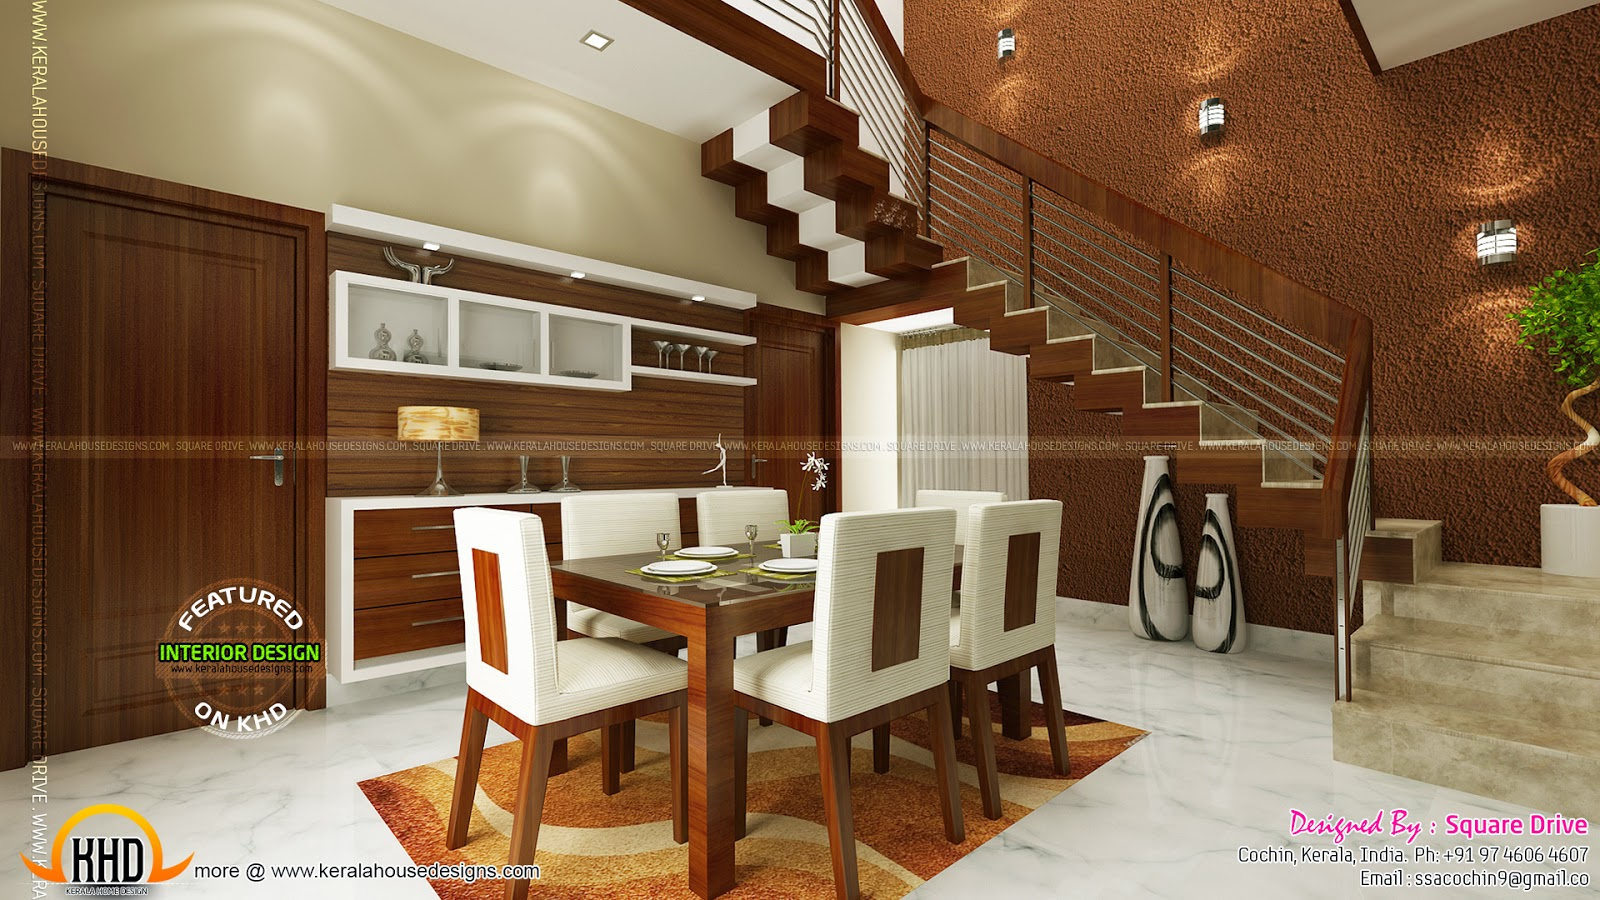 Cochin interior design kerala home design and floor plans for Interior decoration of dining room